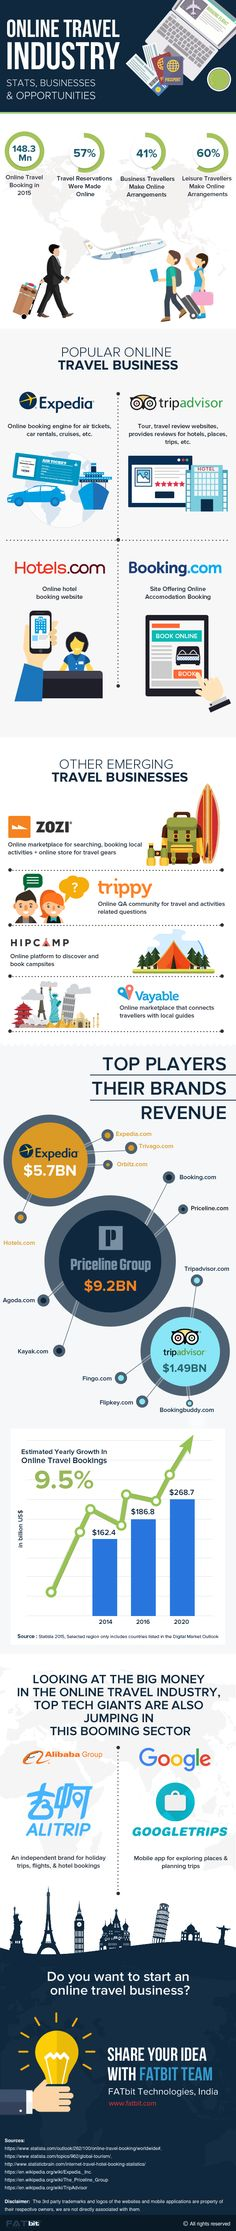 The Future for Online Travel Startups is Growth Oriented #Infographic #Travel